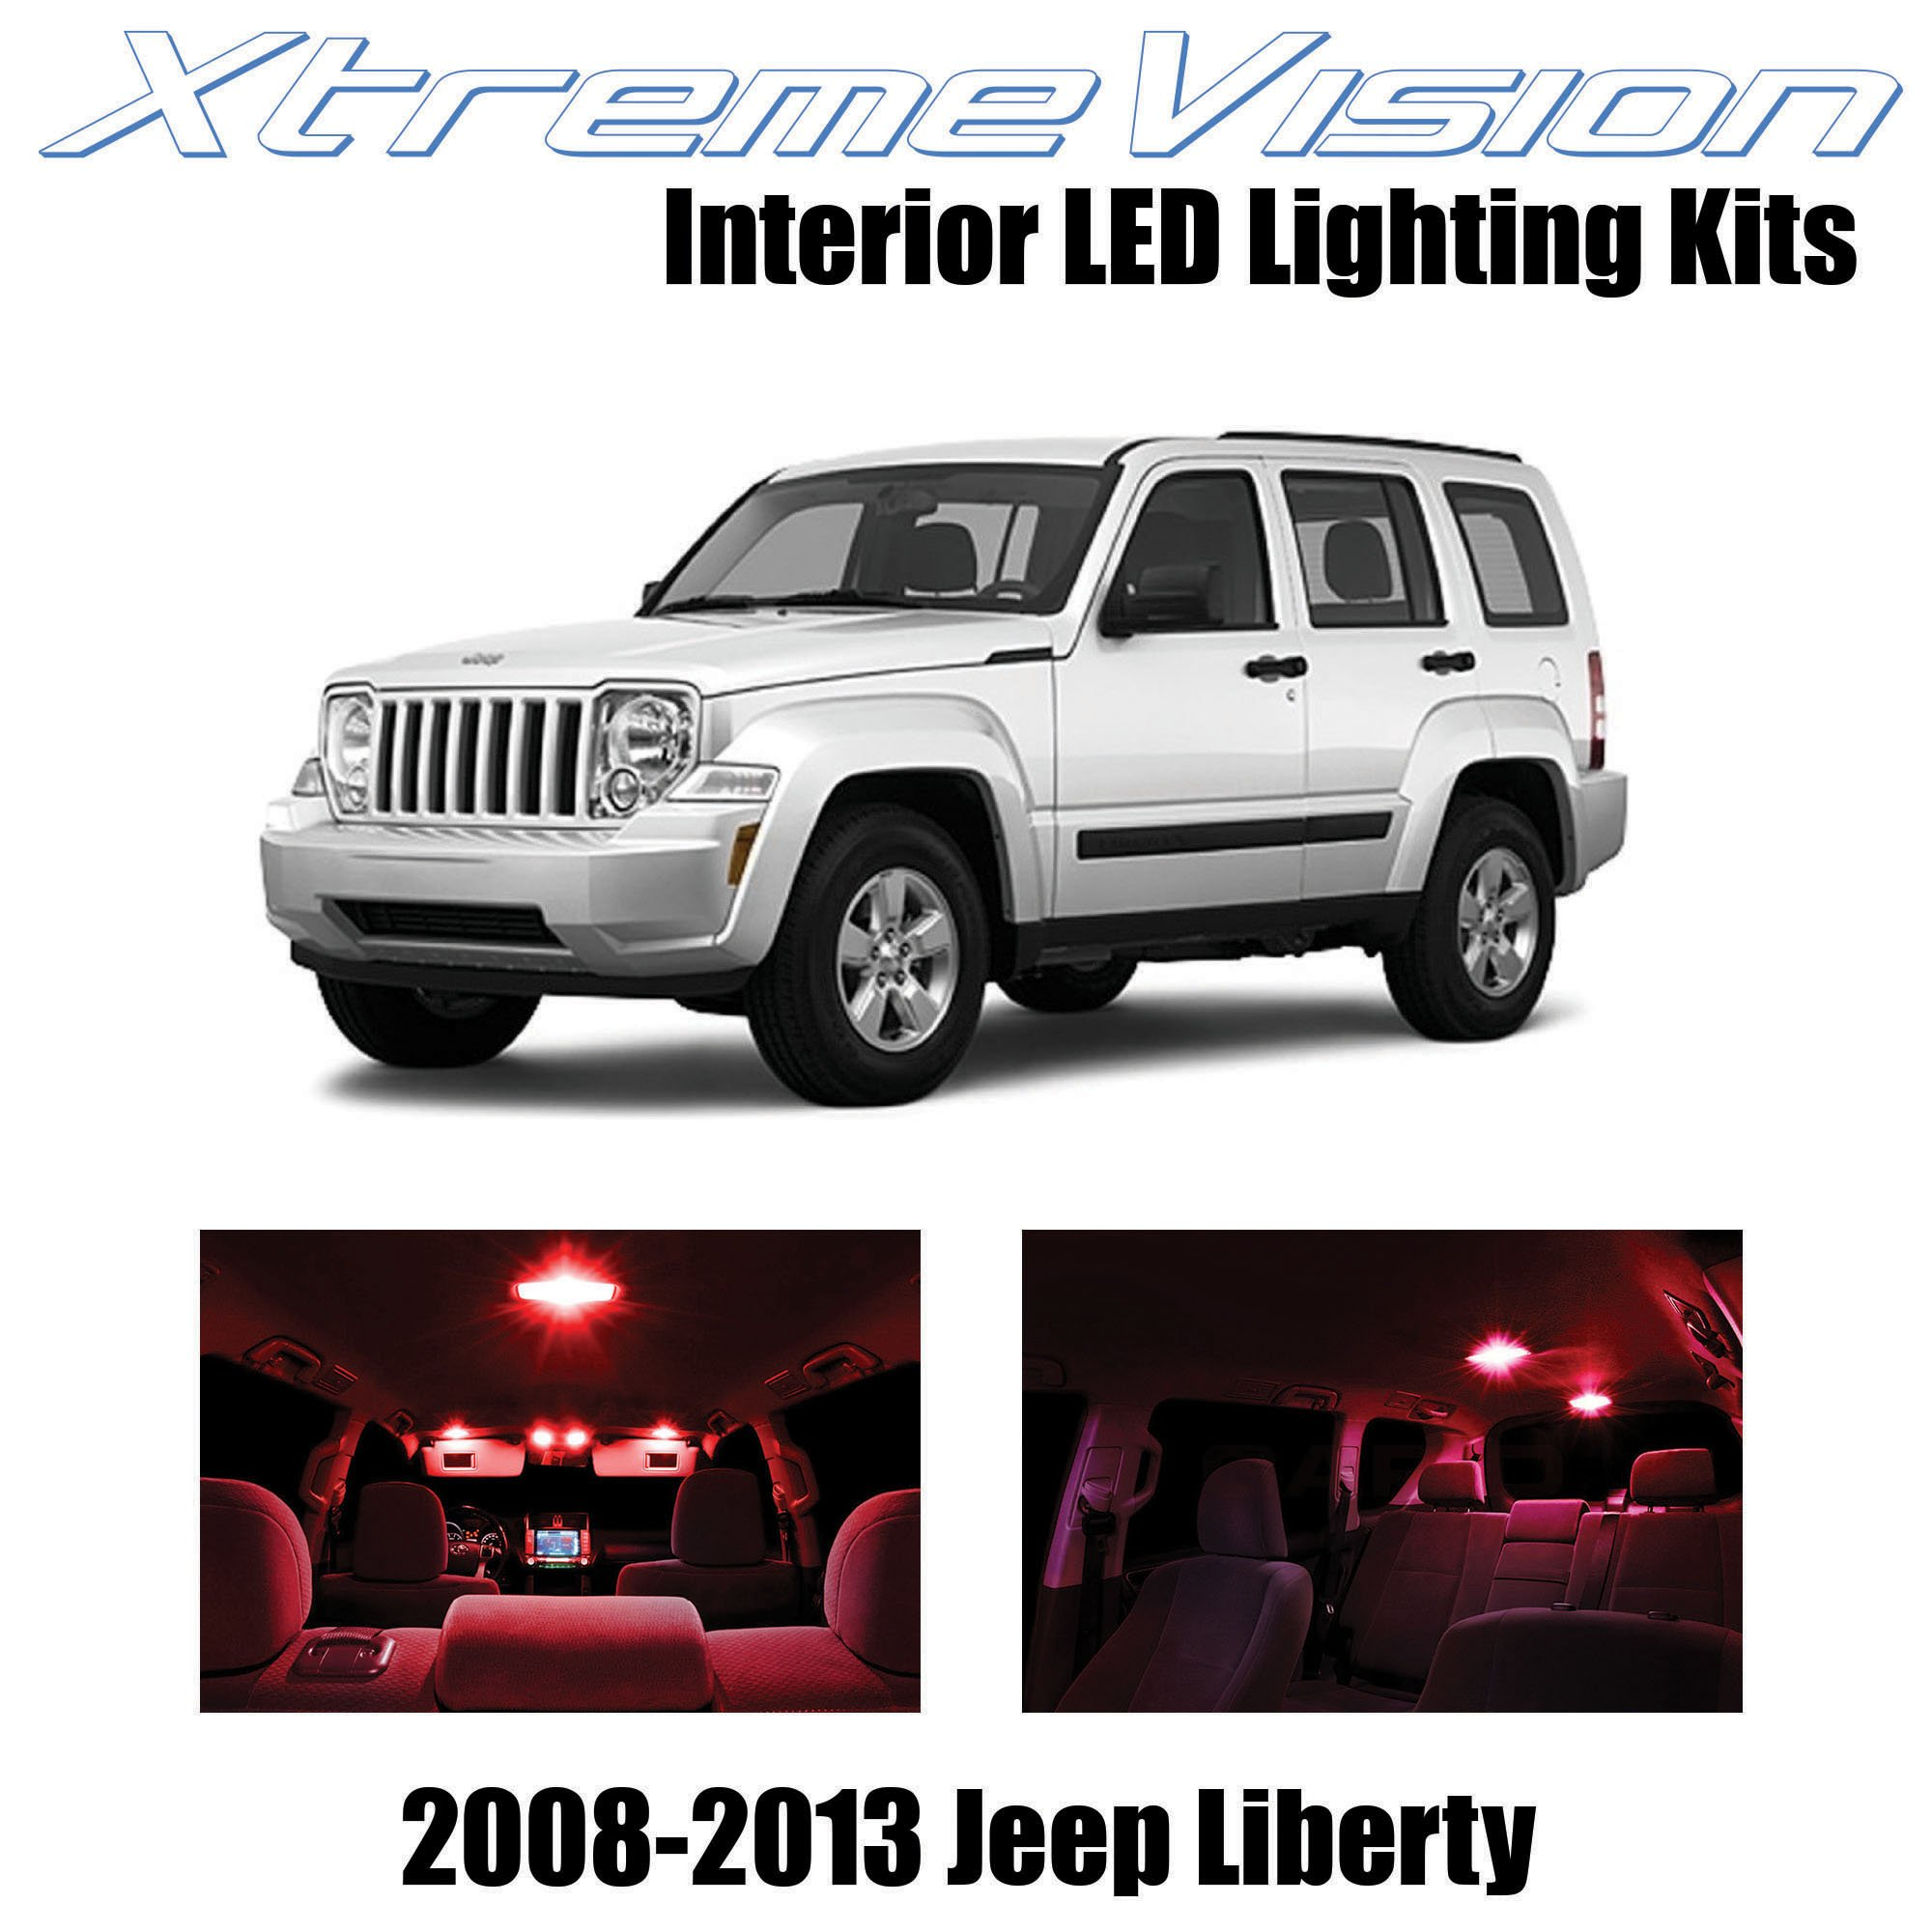 XtremeVision Interior LED for Jeep Liberty 2008-2013 (9 Pieces) Red Interior LED Kit + Installation Tool Tool